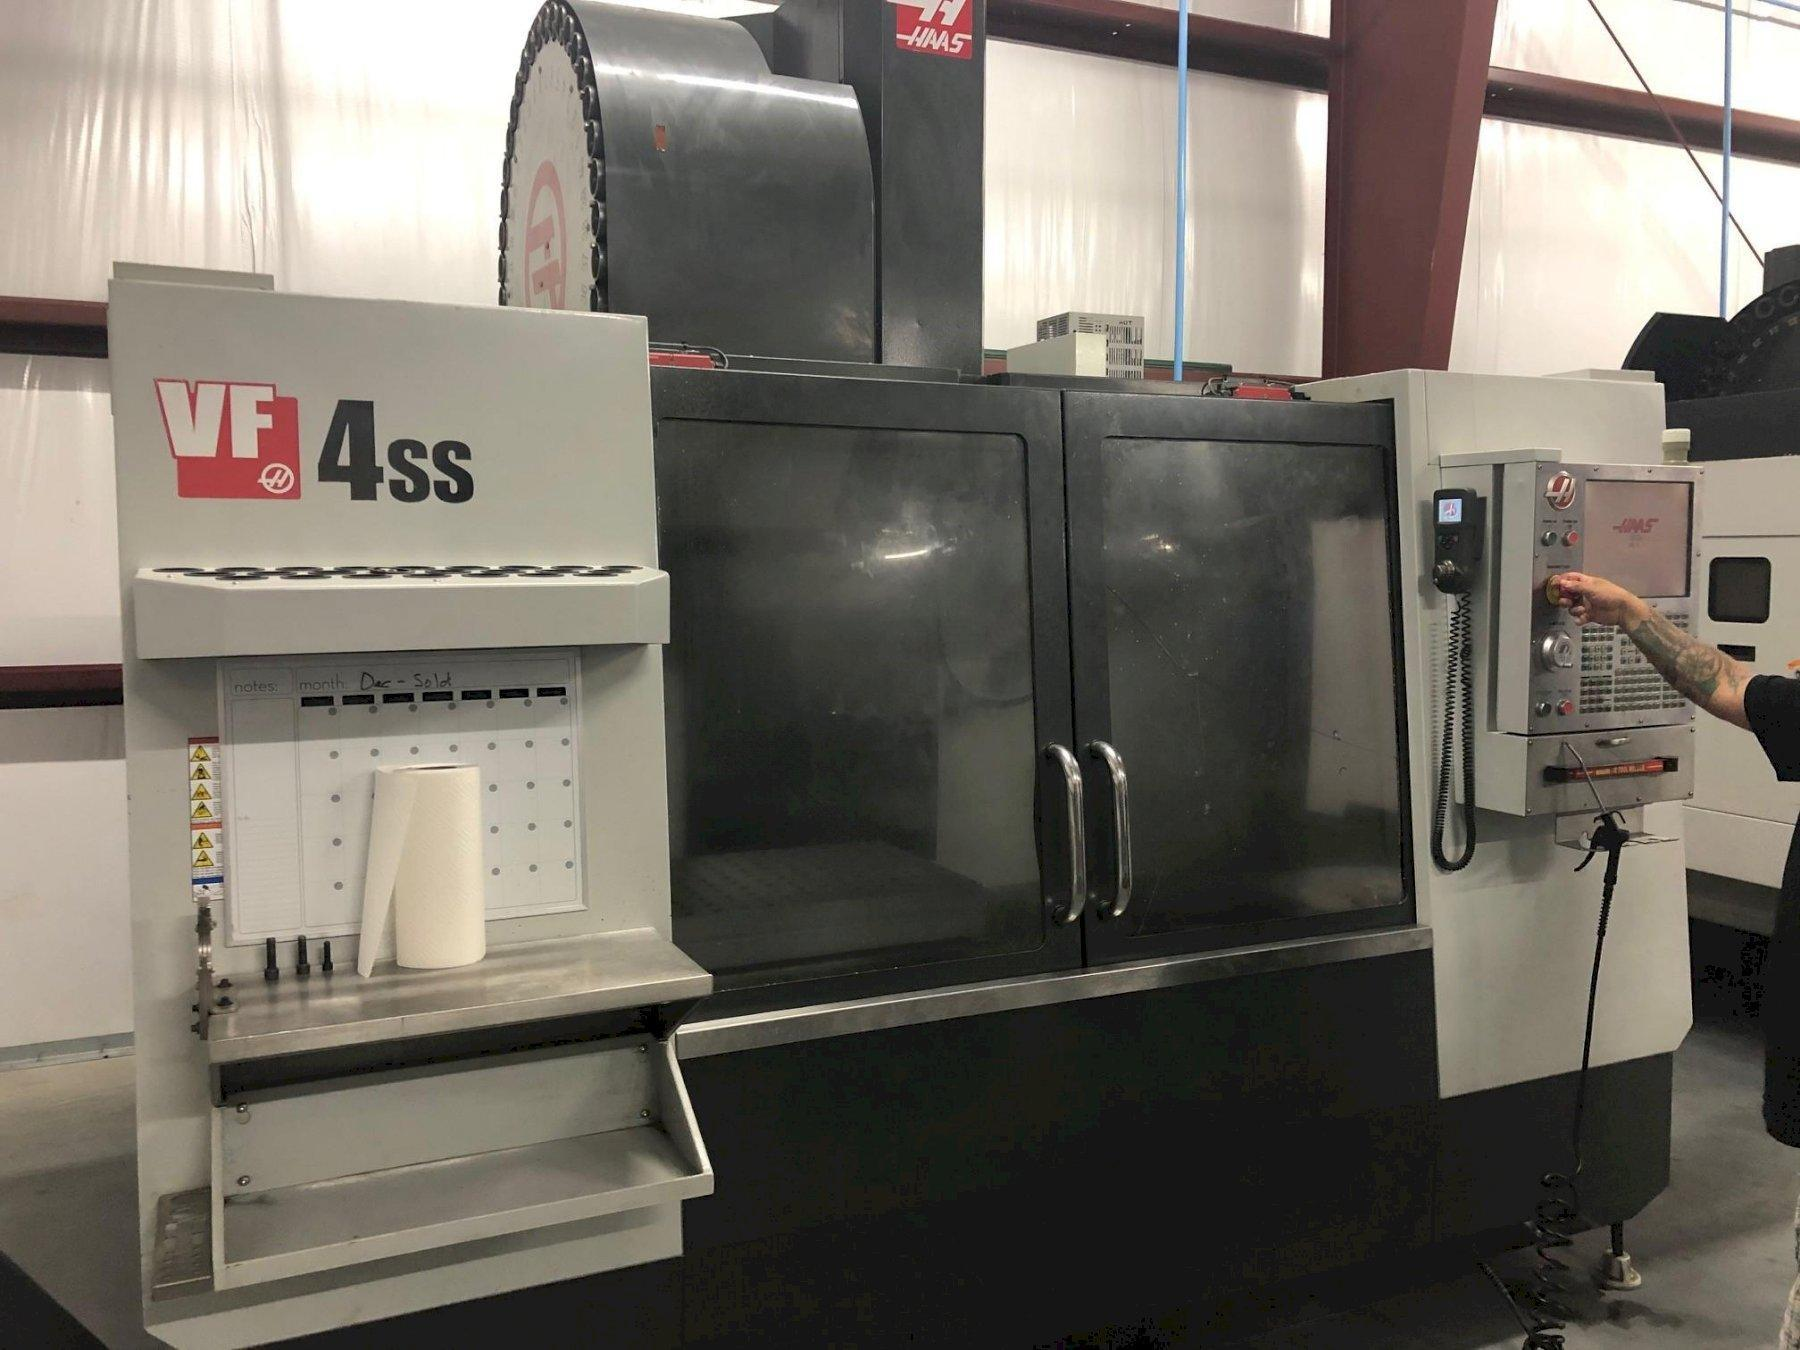 2012 Haas VF-4SS High Speed Vertical Machining Centers - 2 Available!